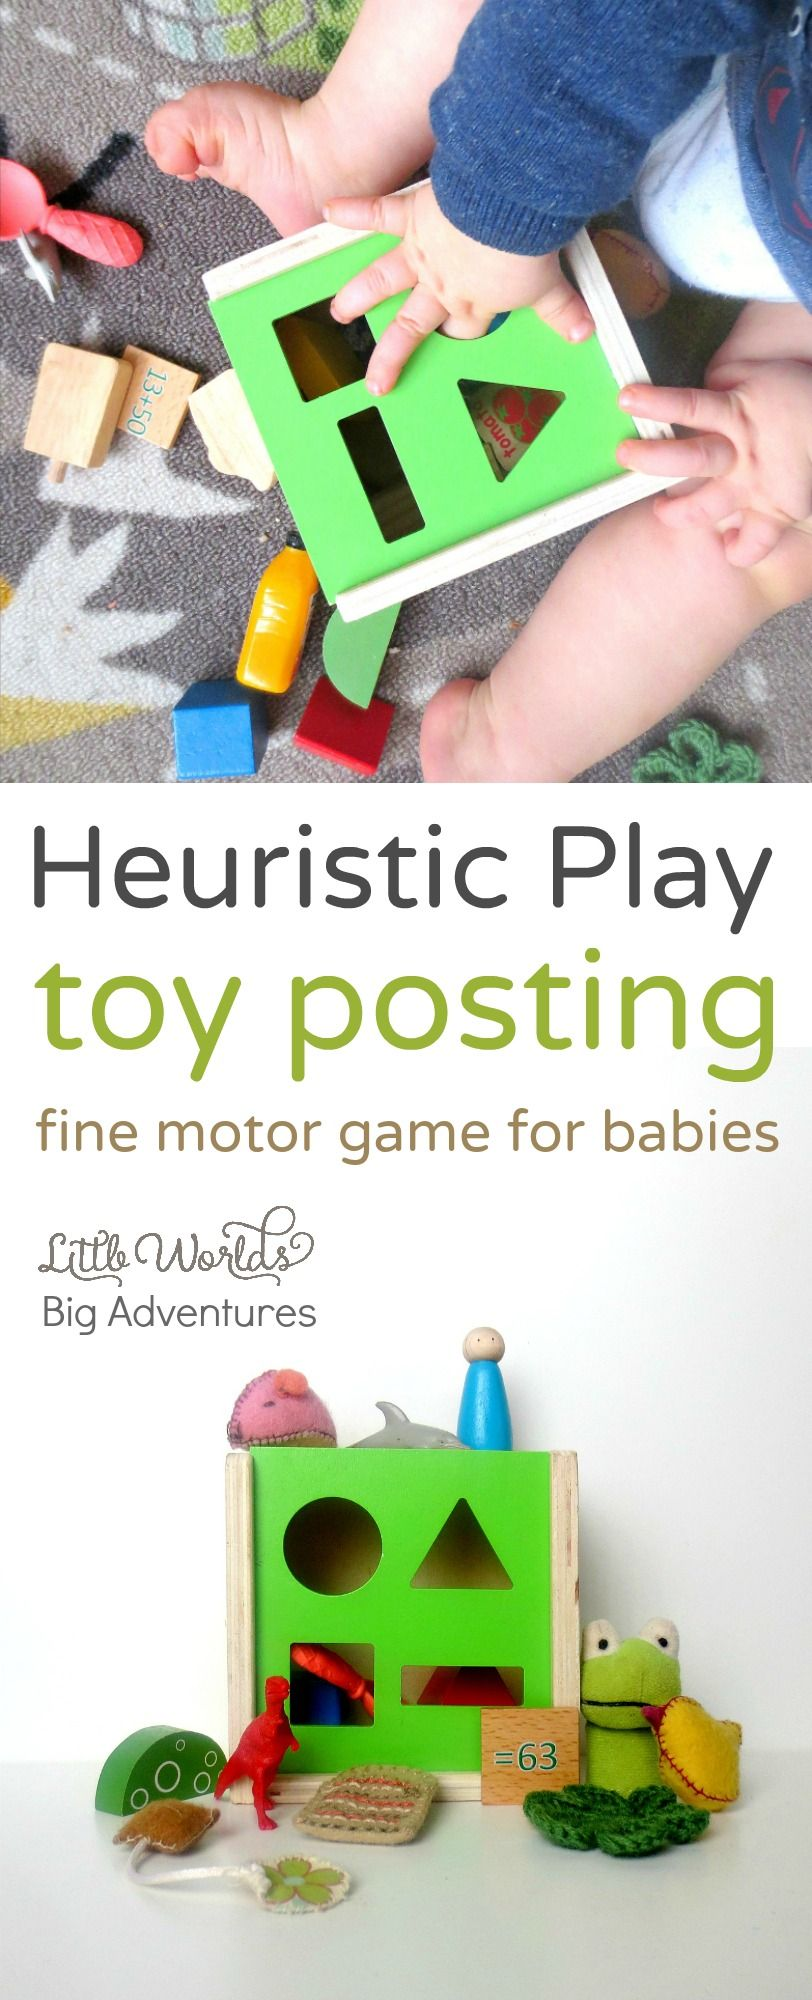 Heuristic Play Toy Posting, a Fine Motor Game for Babies | Little Worlds, Big Adventures